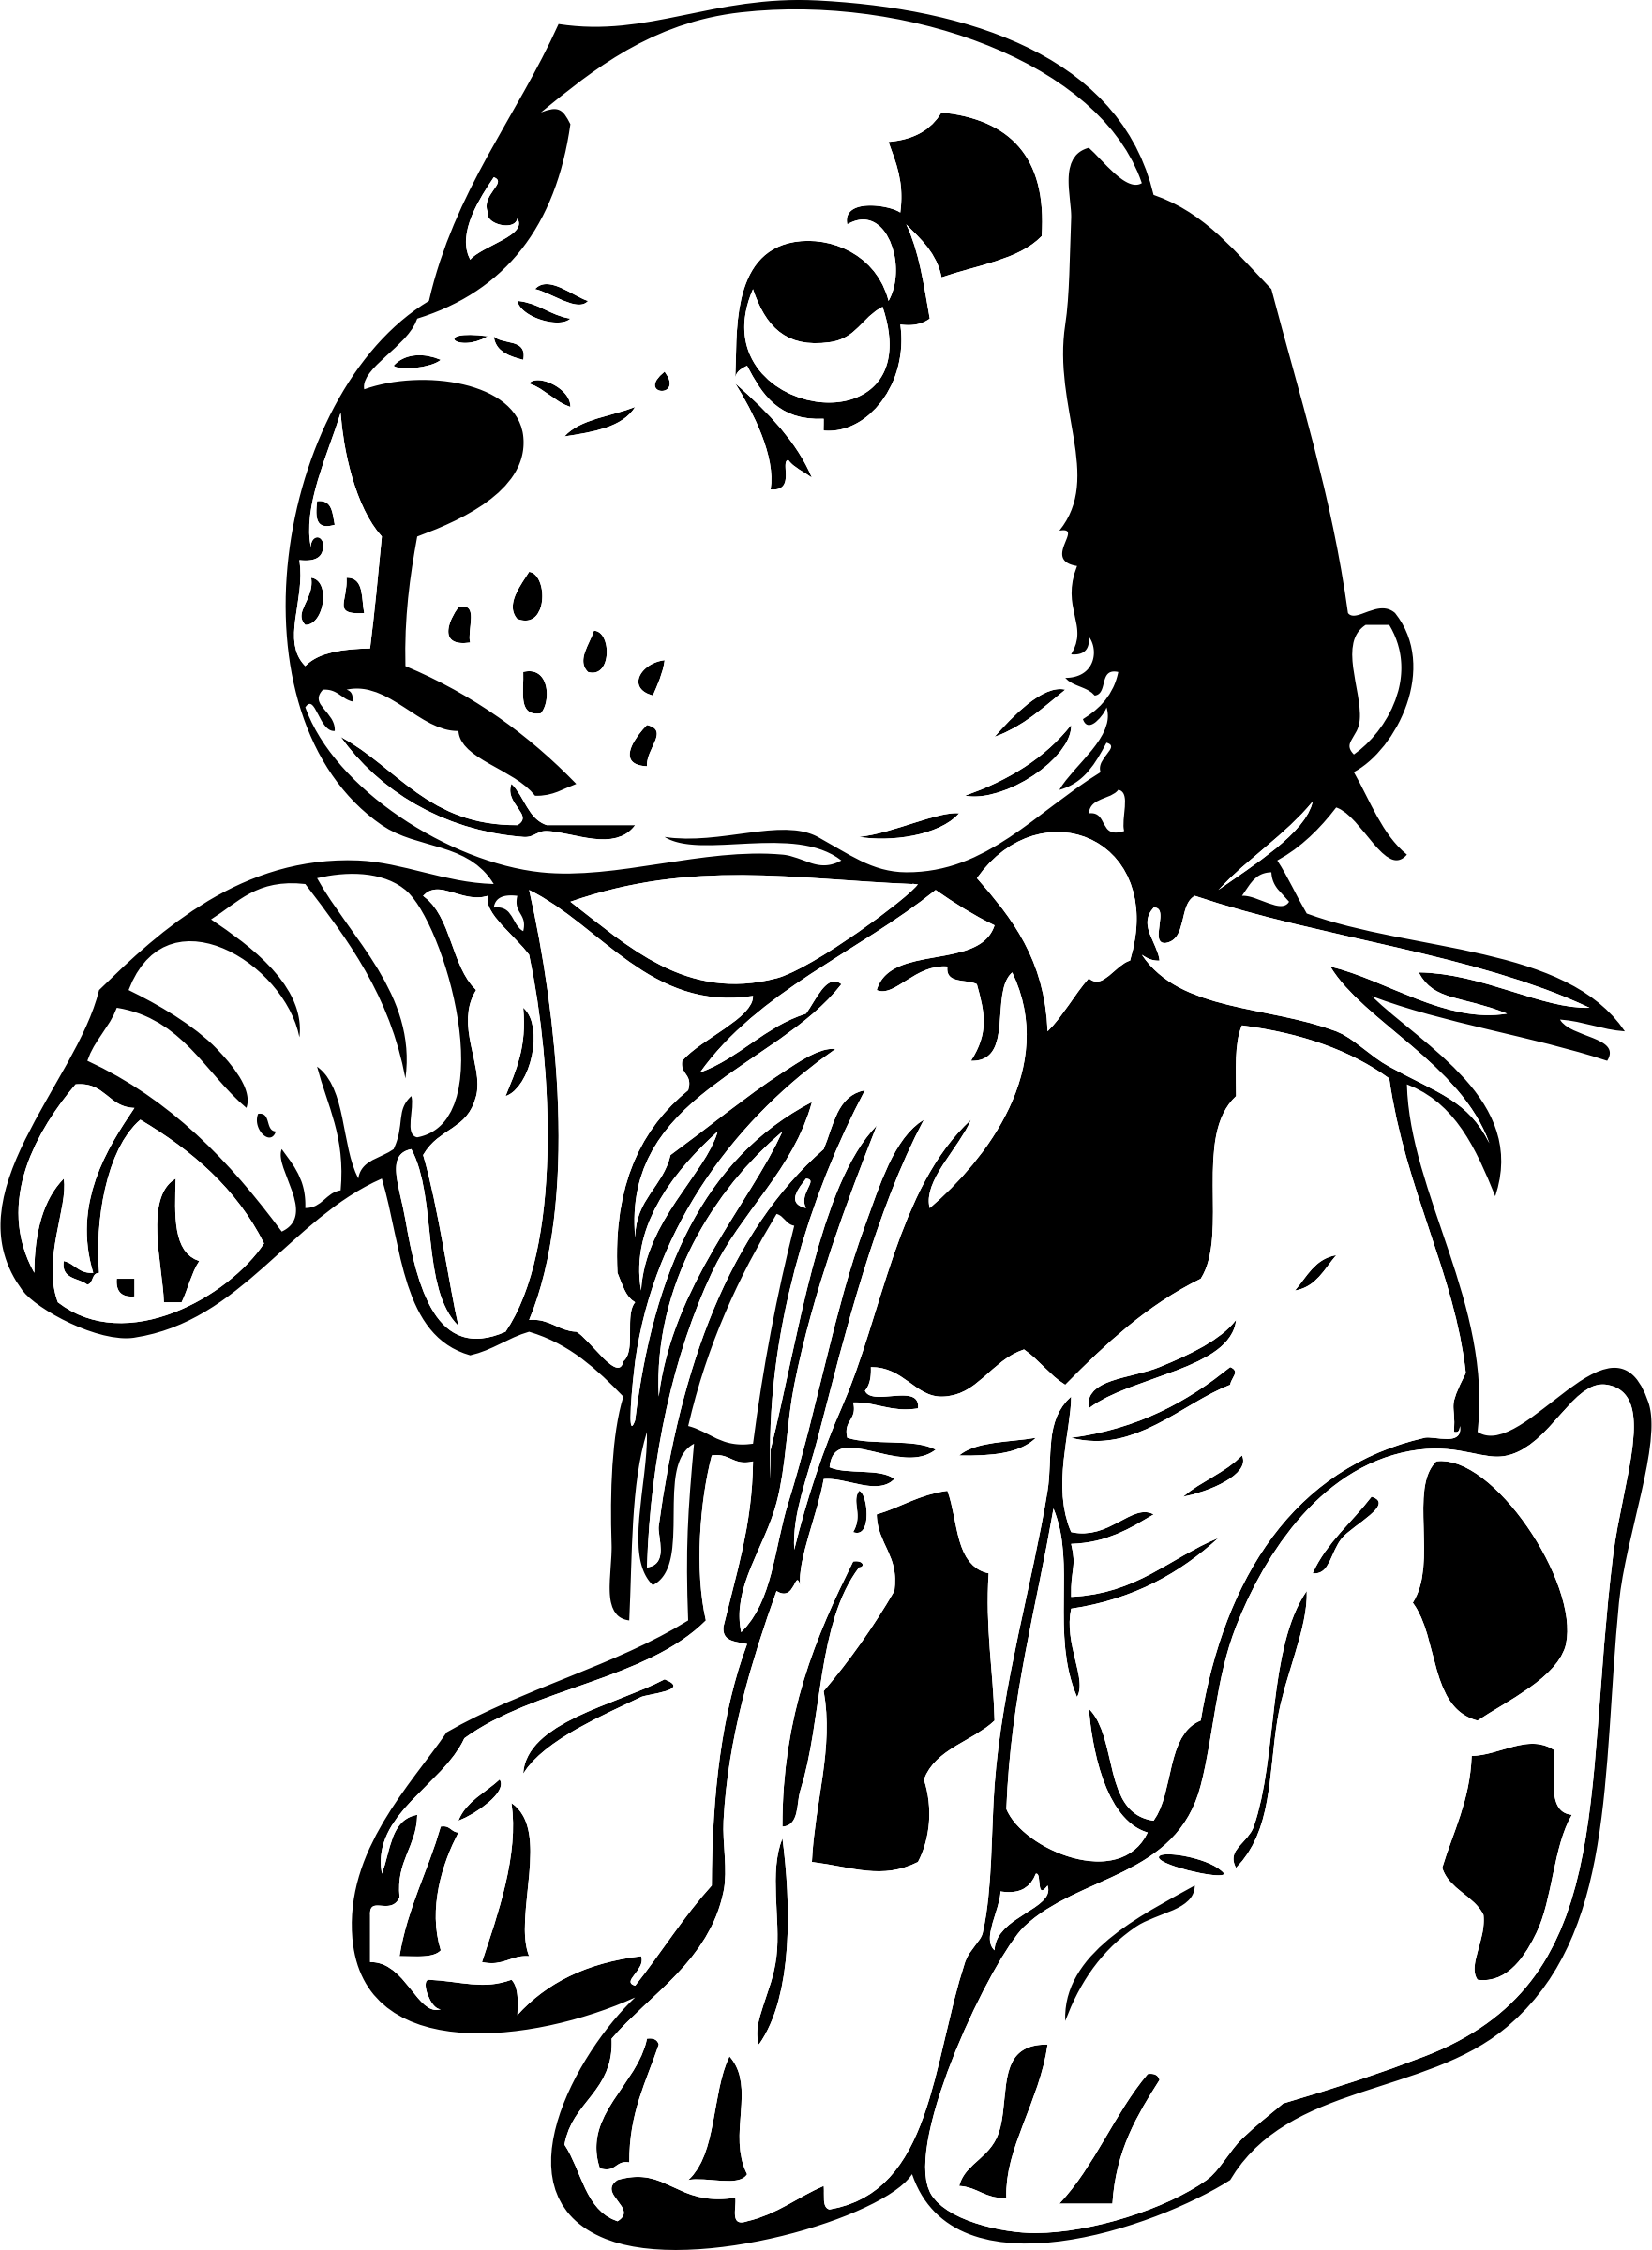 Clipart - sad dog with a broken leg royalty free